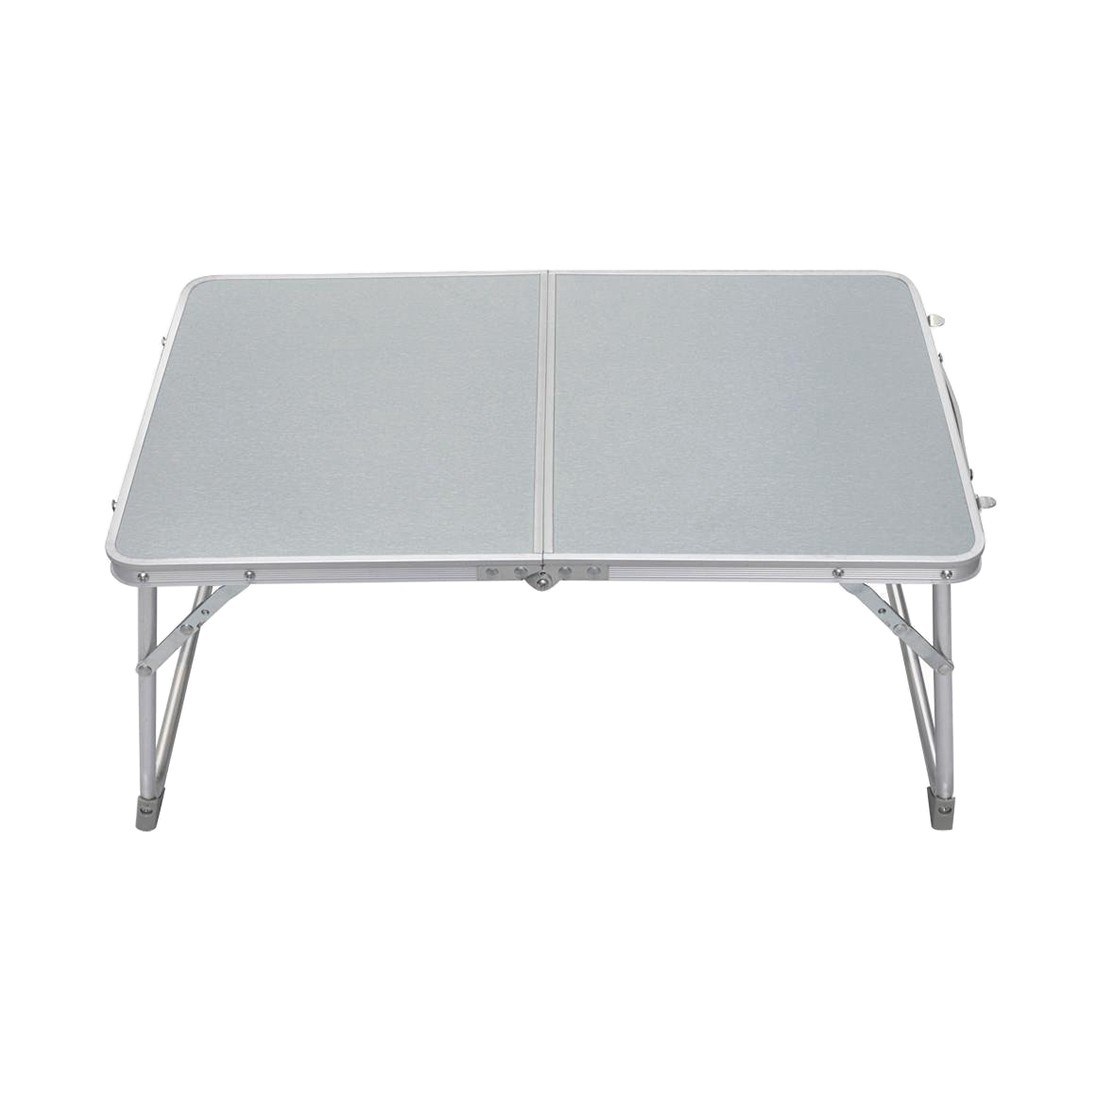 Table De Ping Pong Transformable office table portable camping table outdoor golden aluminium alloy foldable  folding picnic desk ultralight tables for hiking